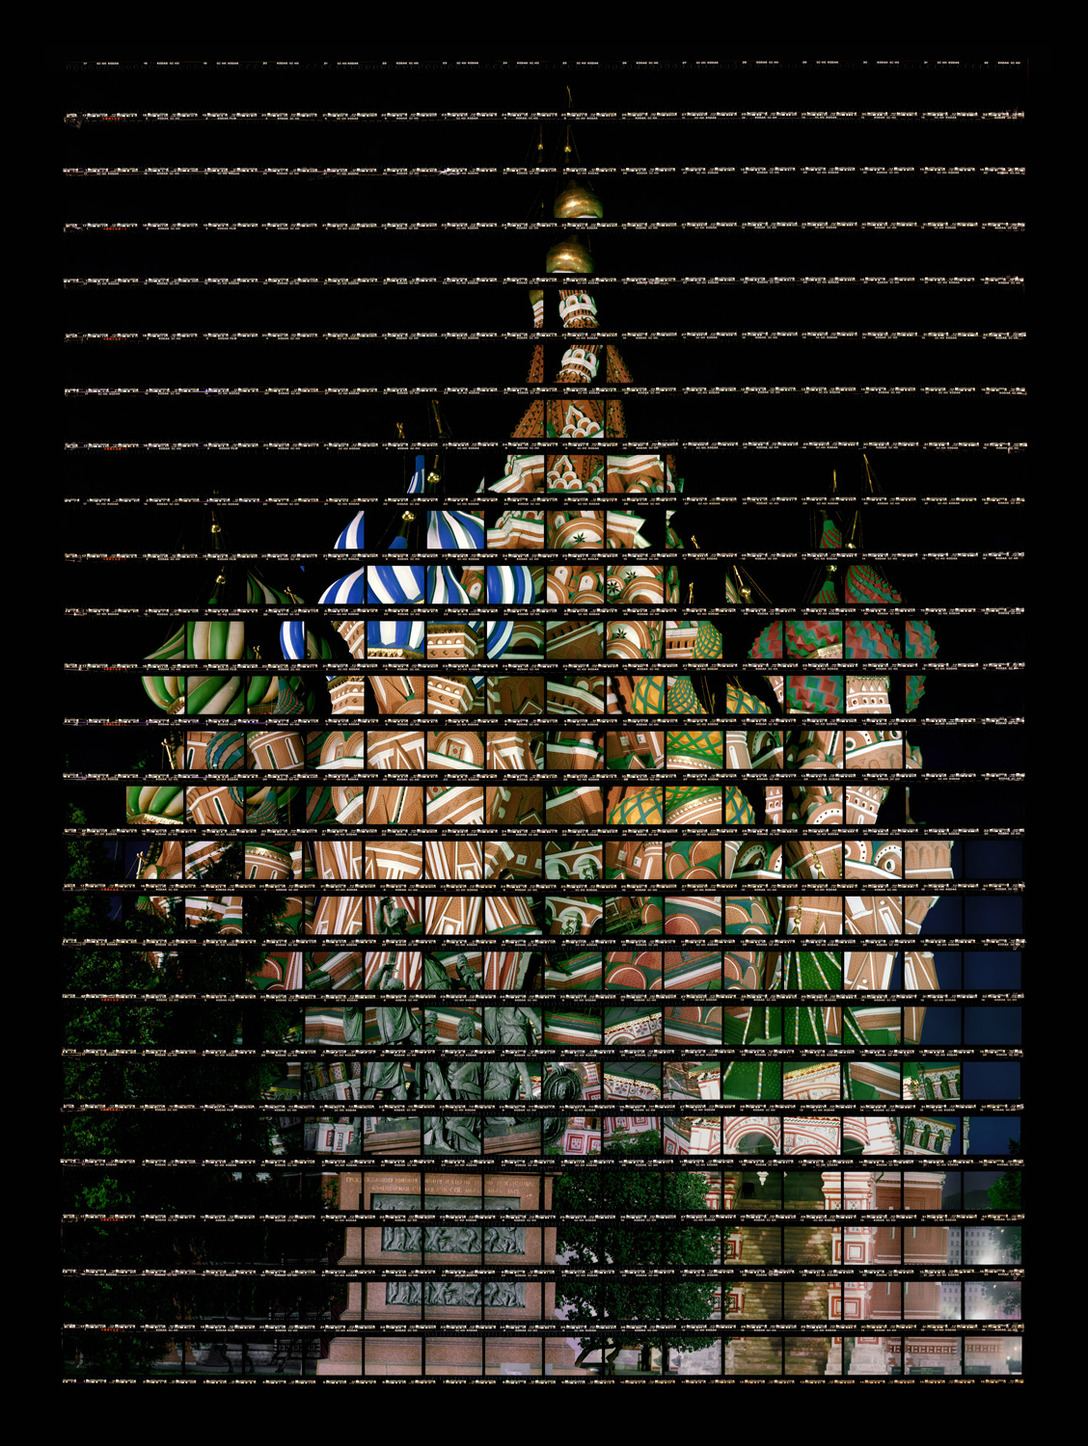 87#04 Moscow, Basilius Cathedral (night), 2014, C-Print, 61 x 83,7 cm, edition 12+3, starting at 2690 Euros / 2990 USD